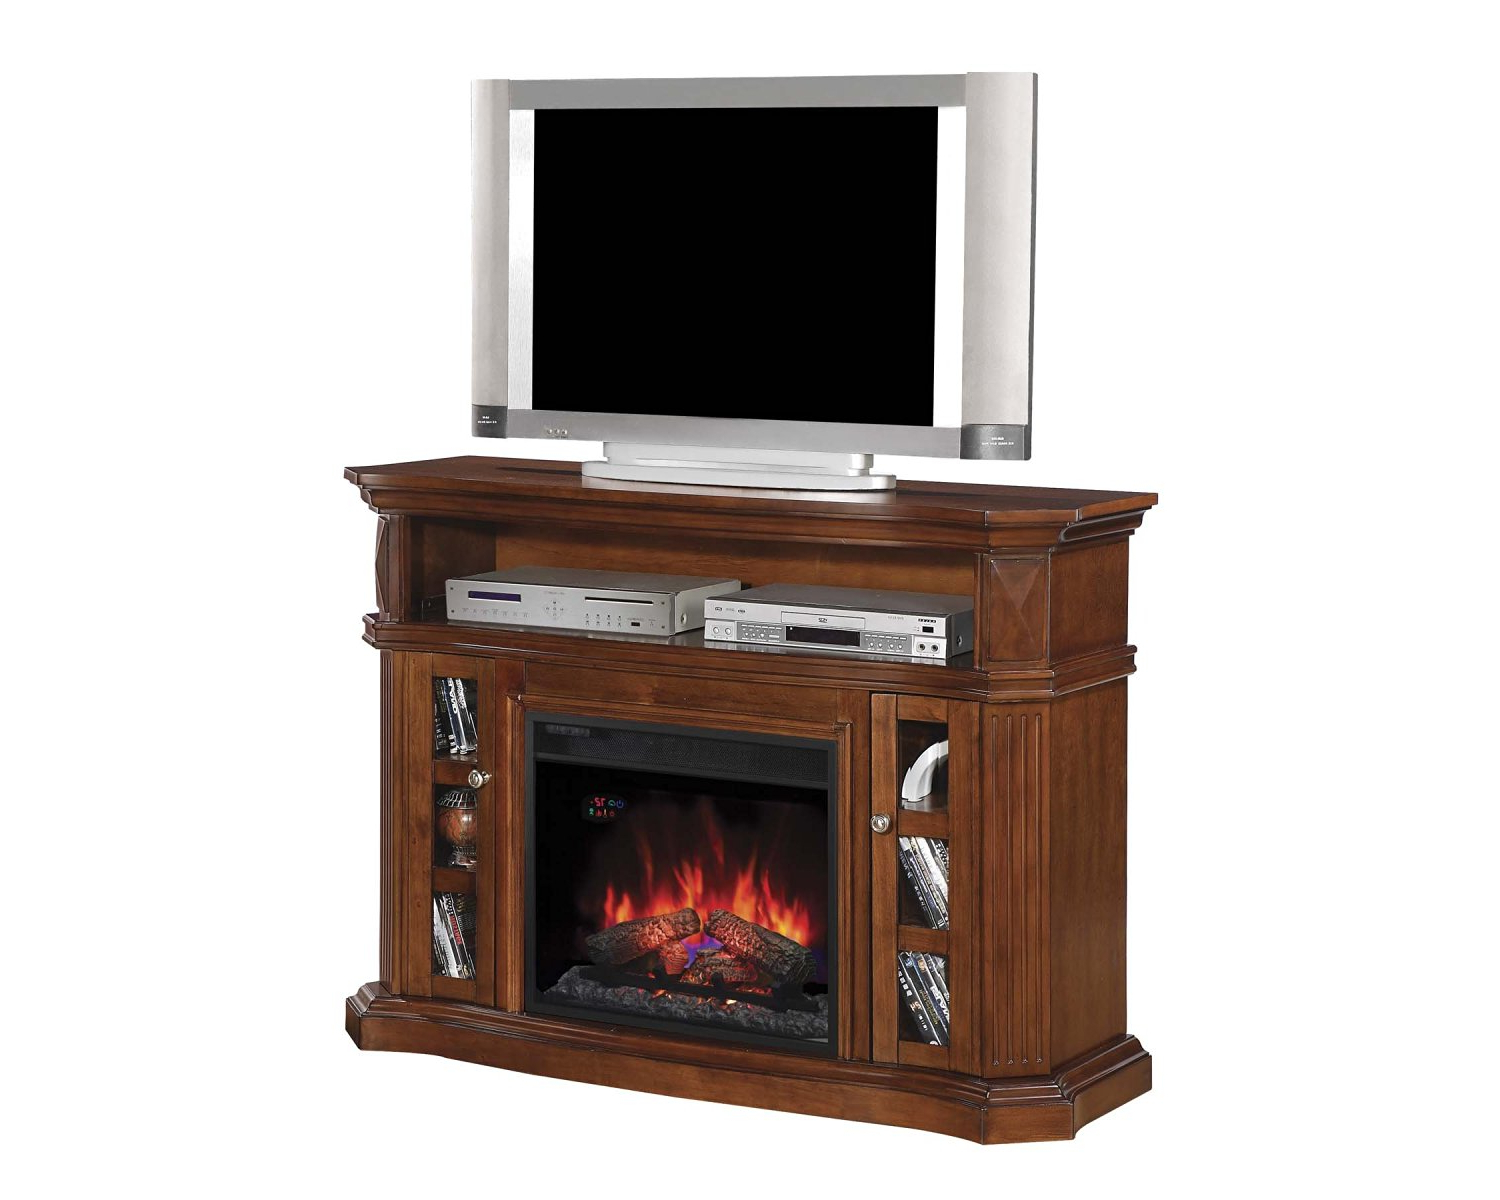 Fashionable Buy Classicflame 26mms9626 Nw145 Enterprise Tv Stand With Speakers Within Dixon White 65 Inch Tv Stands (View 16 of 20)